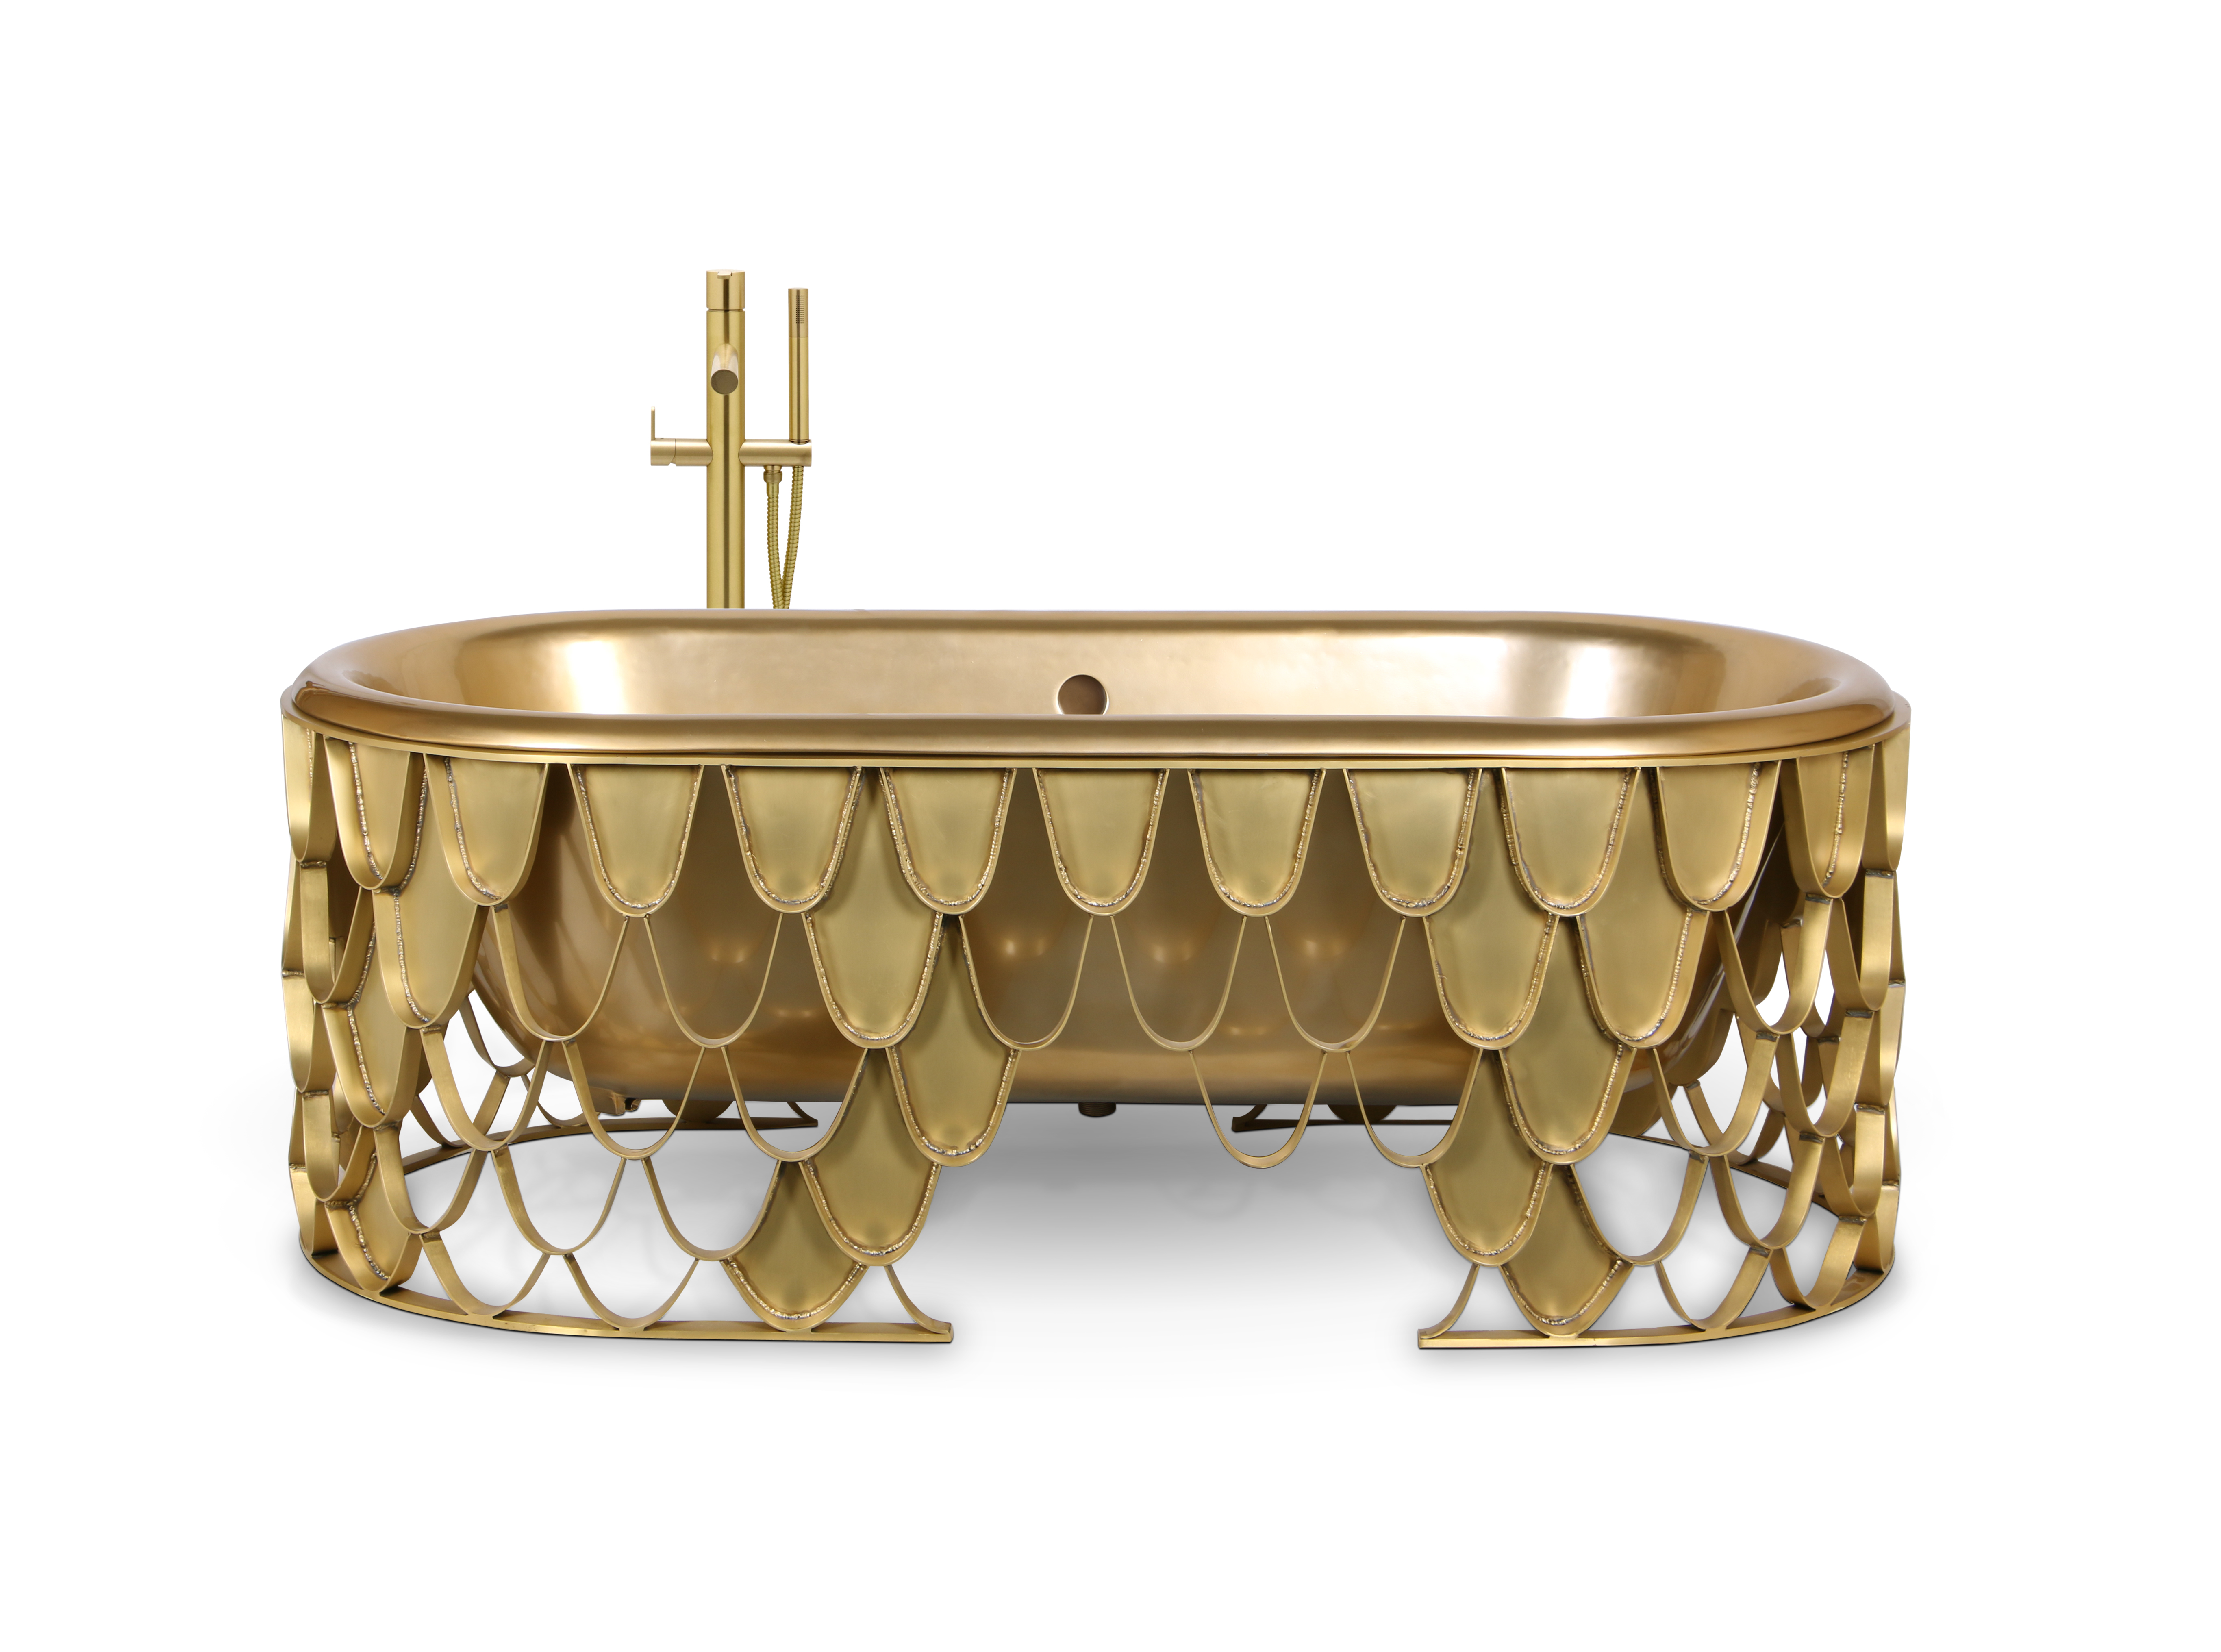 bathroom, golden bathroom, gold,maison valentina, bathub, mirror, rug, tap, bathroom decoration, bathroom decor bathroom 5 Ideas to Add a Touch of Gold to Your Bathroom 5 ideas to add a touch of gold to your bathroom  koi bathtub 1 HR